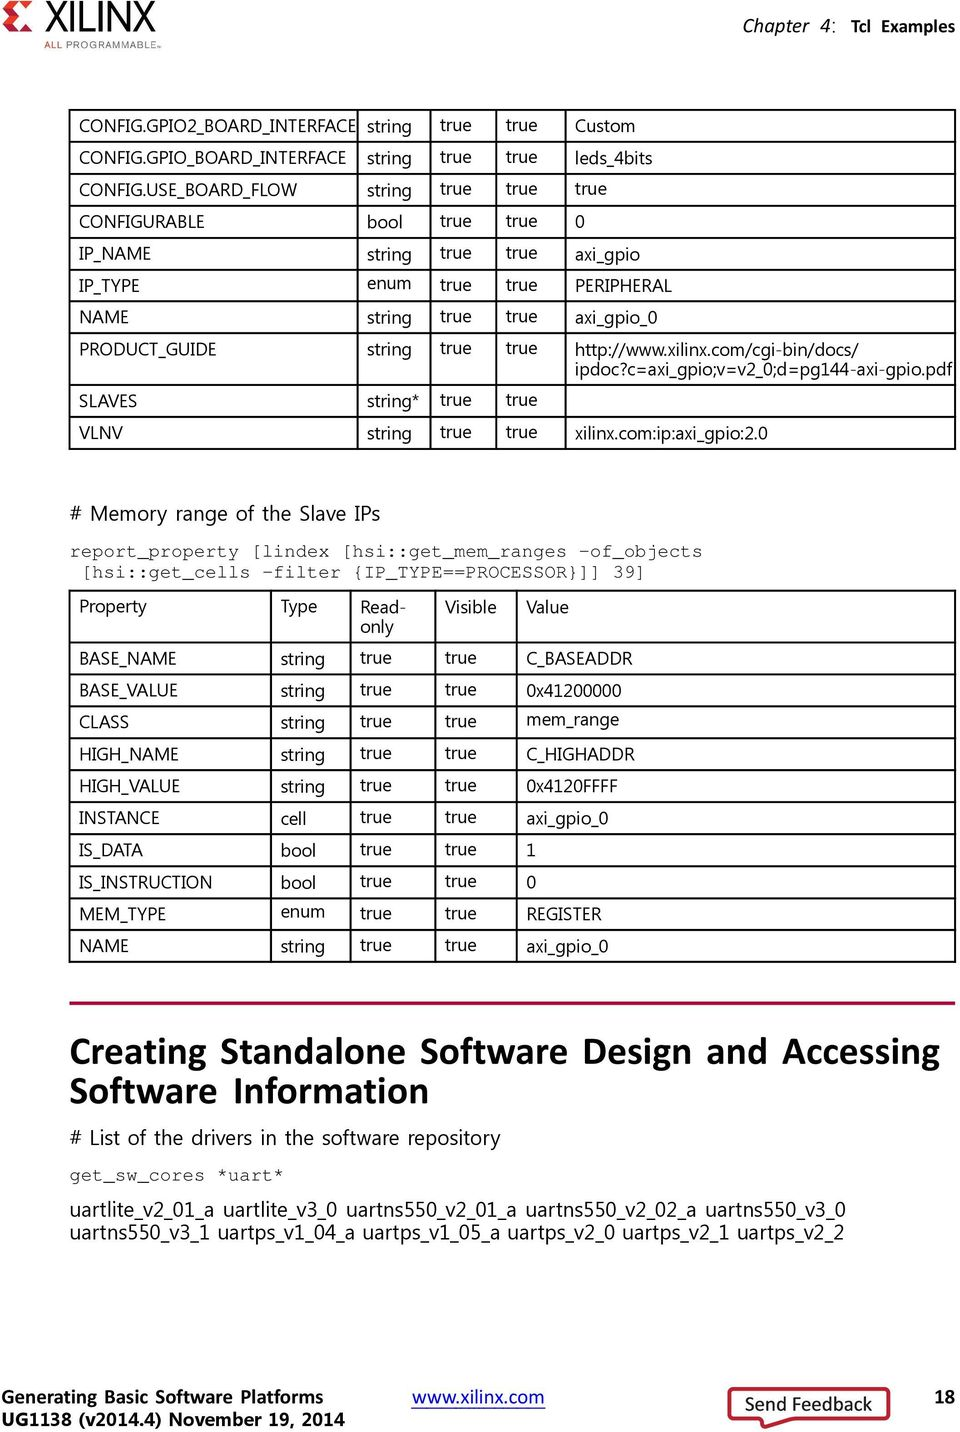 Generating Basic Software Platforms - PDF